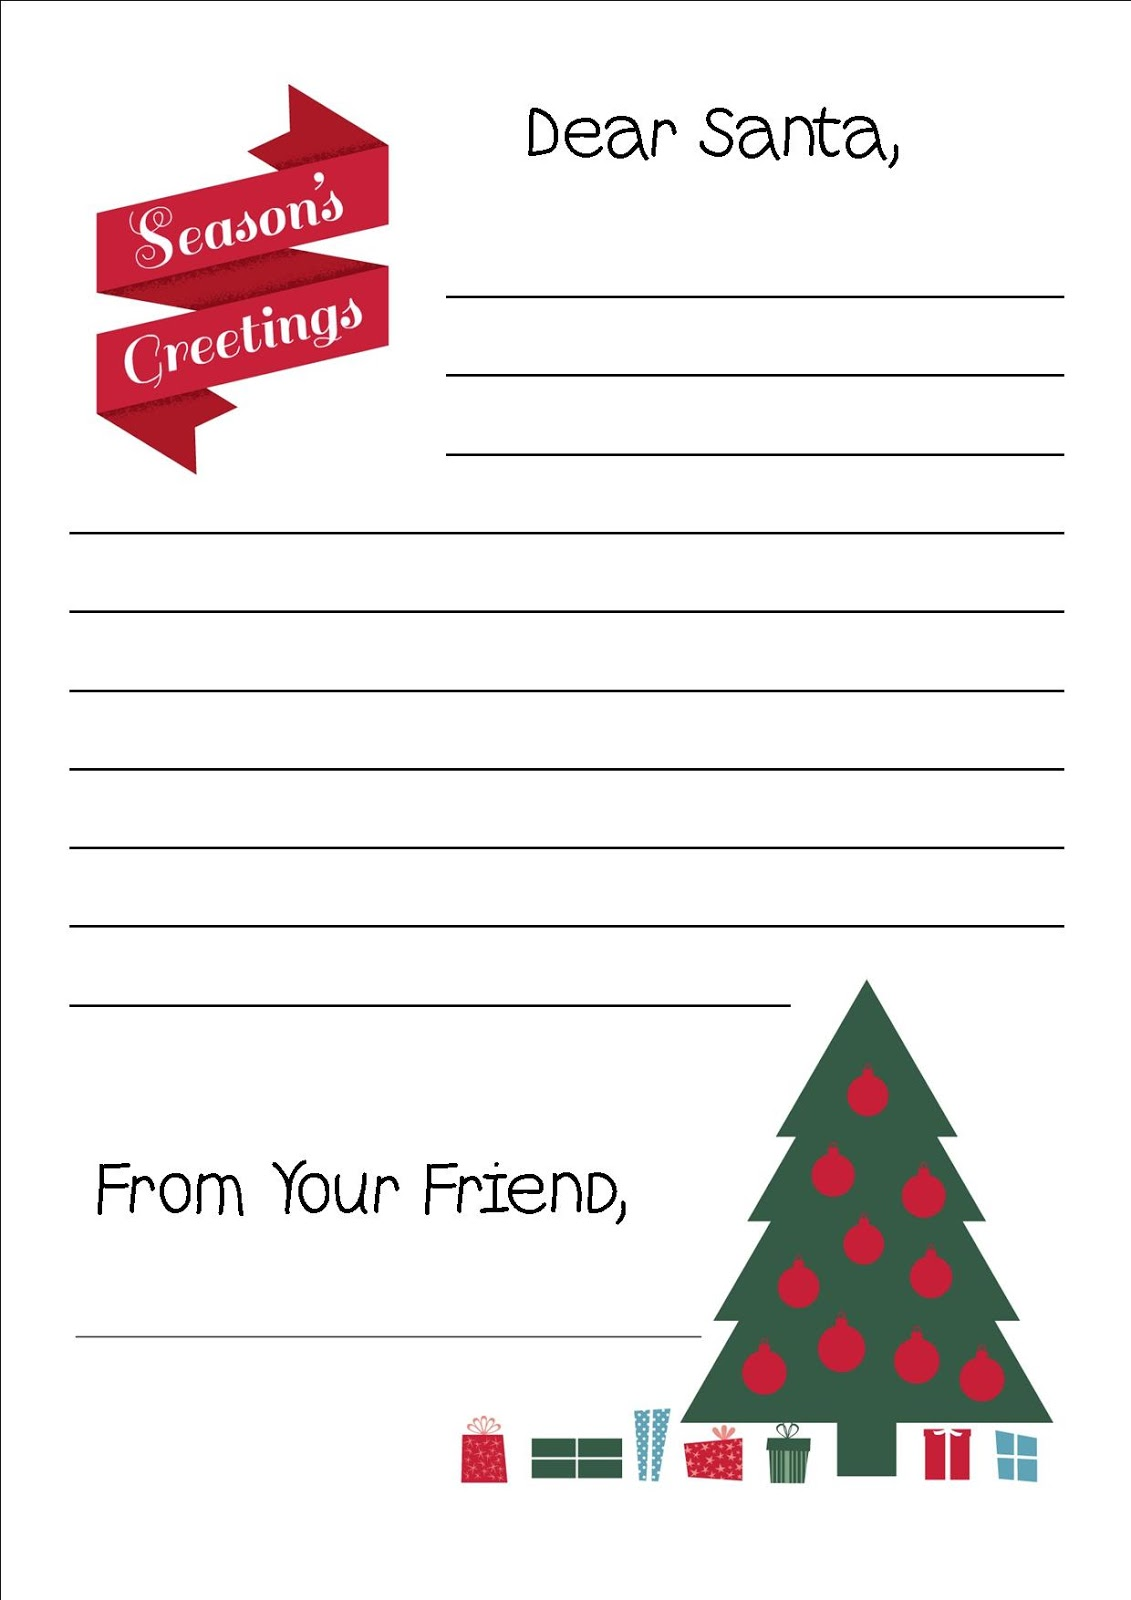 Free printable letter to santa writing paper for those kids that might like something more traditional we have a simple christmas tree all lit up with a few gifts ready to open on christmas morning spiritdancerdesigns